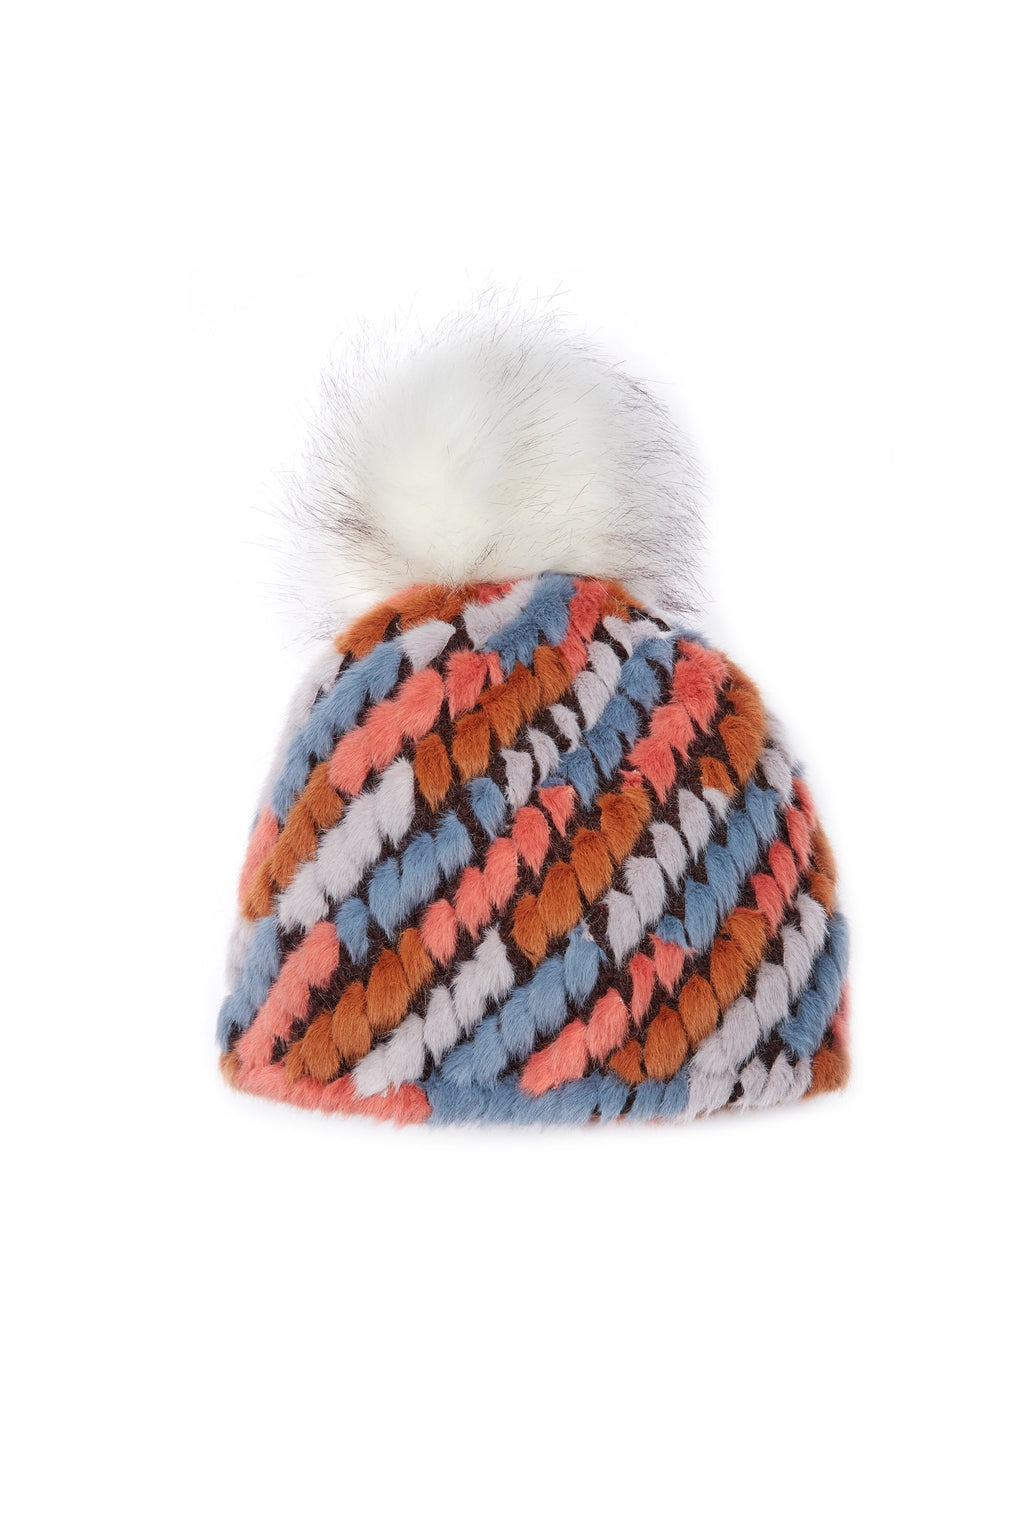 Jocelyn Knitted Faux Fur Crosby Pineapple Hat in Tan Multi